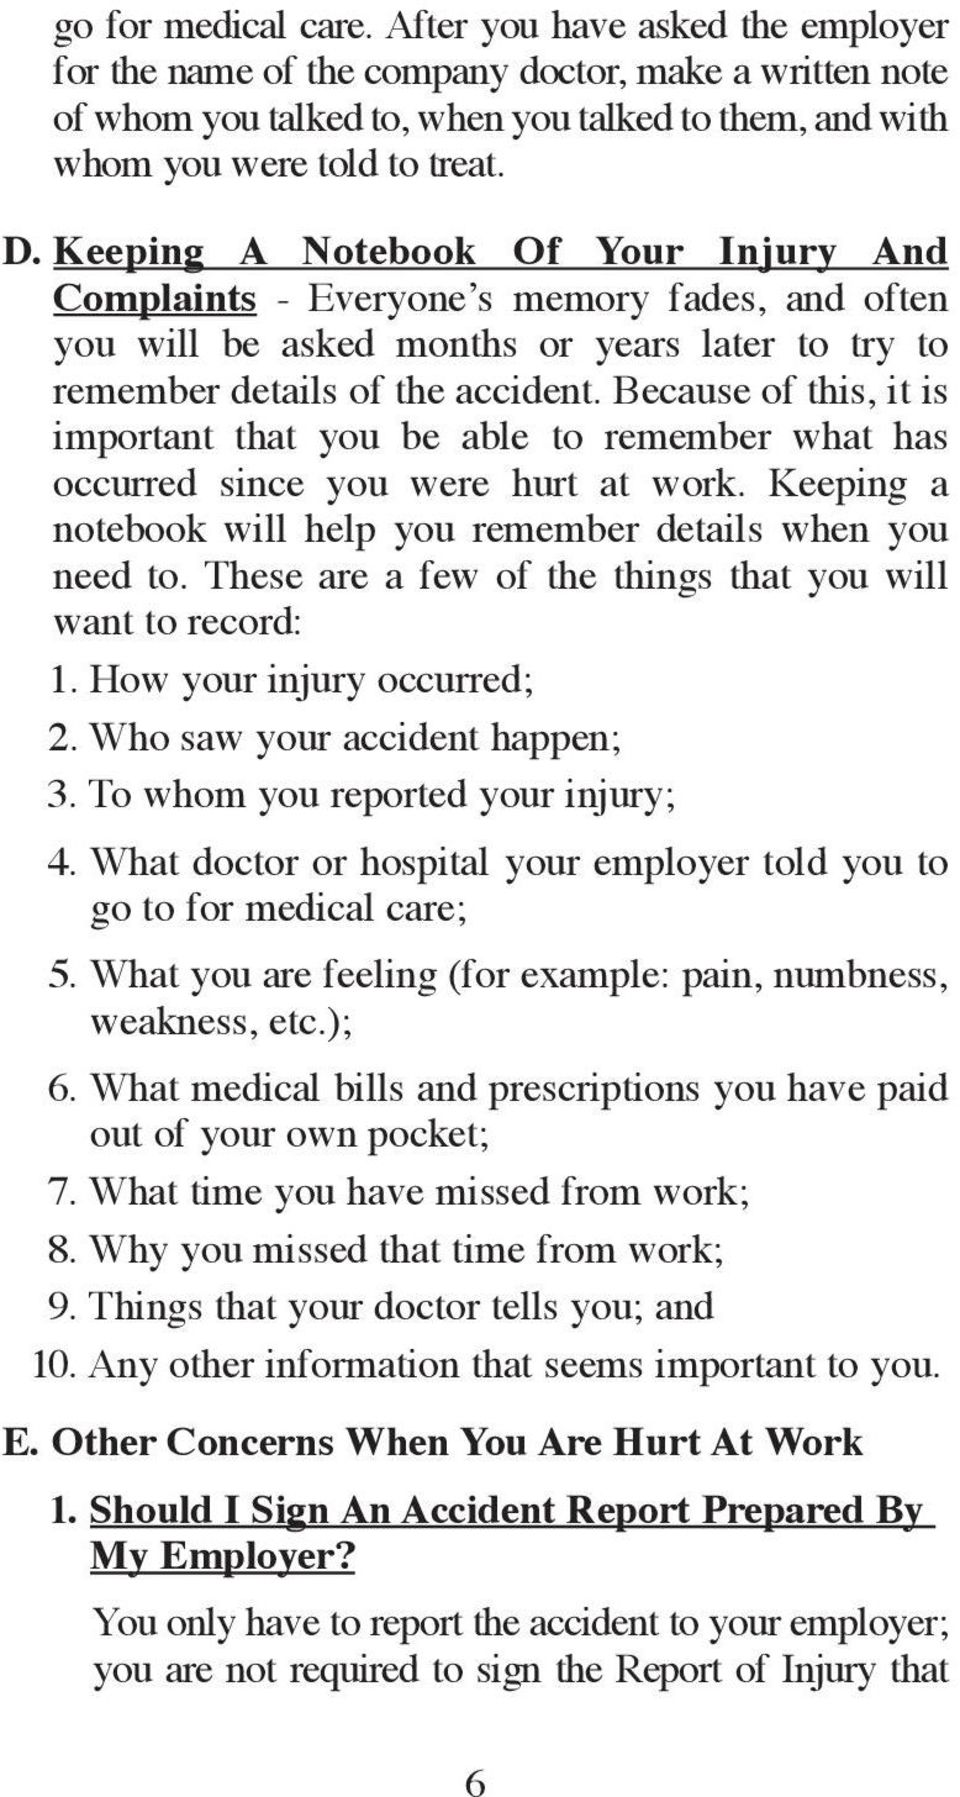 Because of this, it is important that you be able to remember what has occurred since you were hurt at work. Keeping a notebook will help you remember details when you need to.